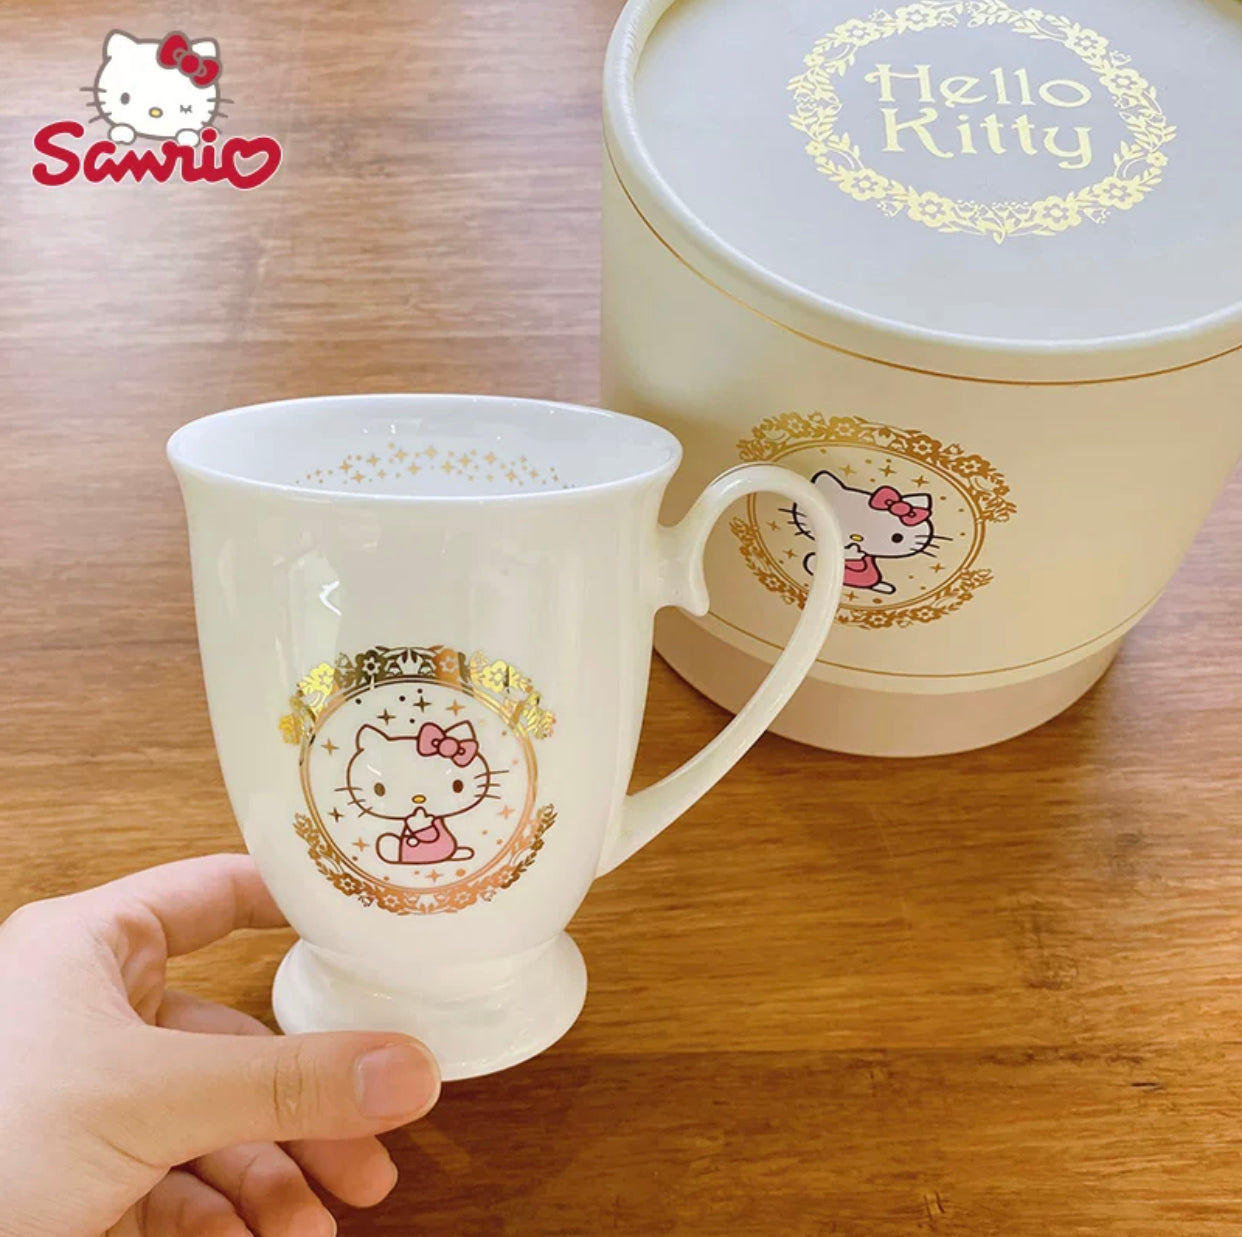 Hello Kitty England Style Bone Ceramic Cup 300 ml Elegance With Beautiful Gift Box - Hello Kitty Camp